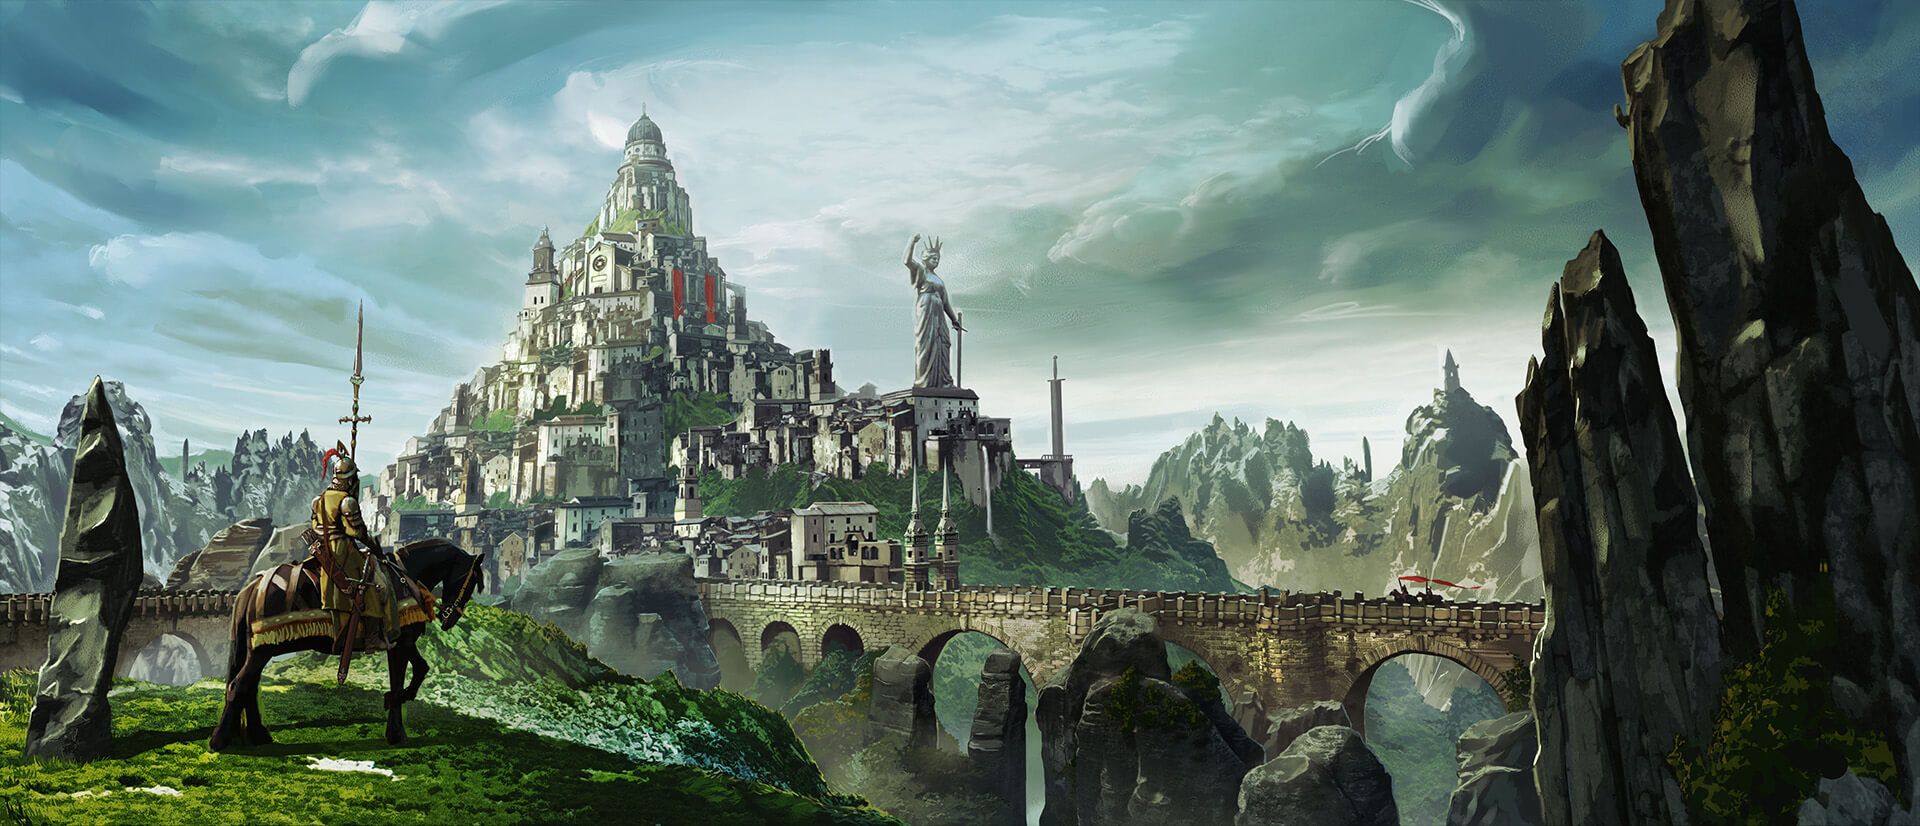 Gothic Girl Wallpaper Concept Art For Film And Enterntainment Leif Heanzo Design